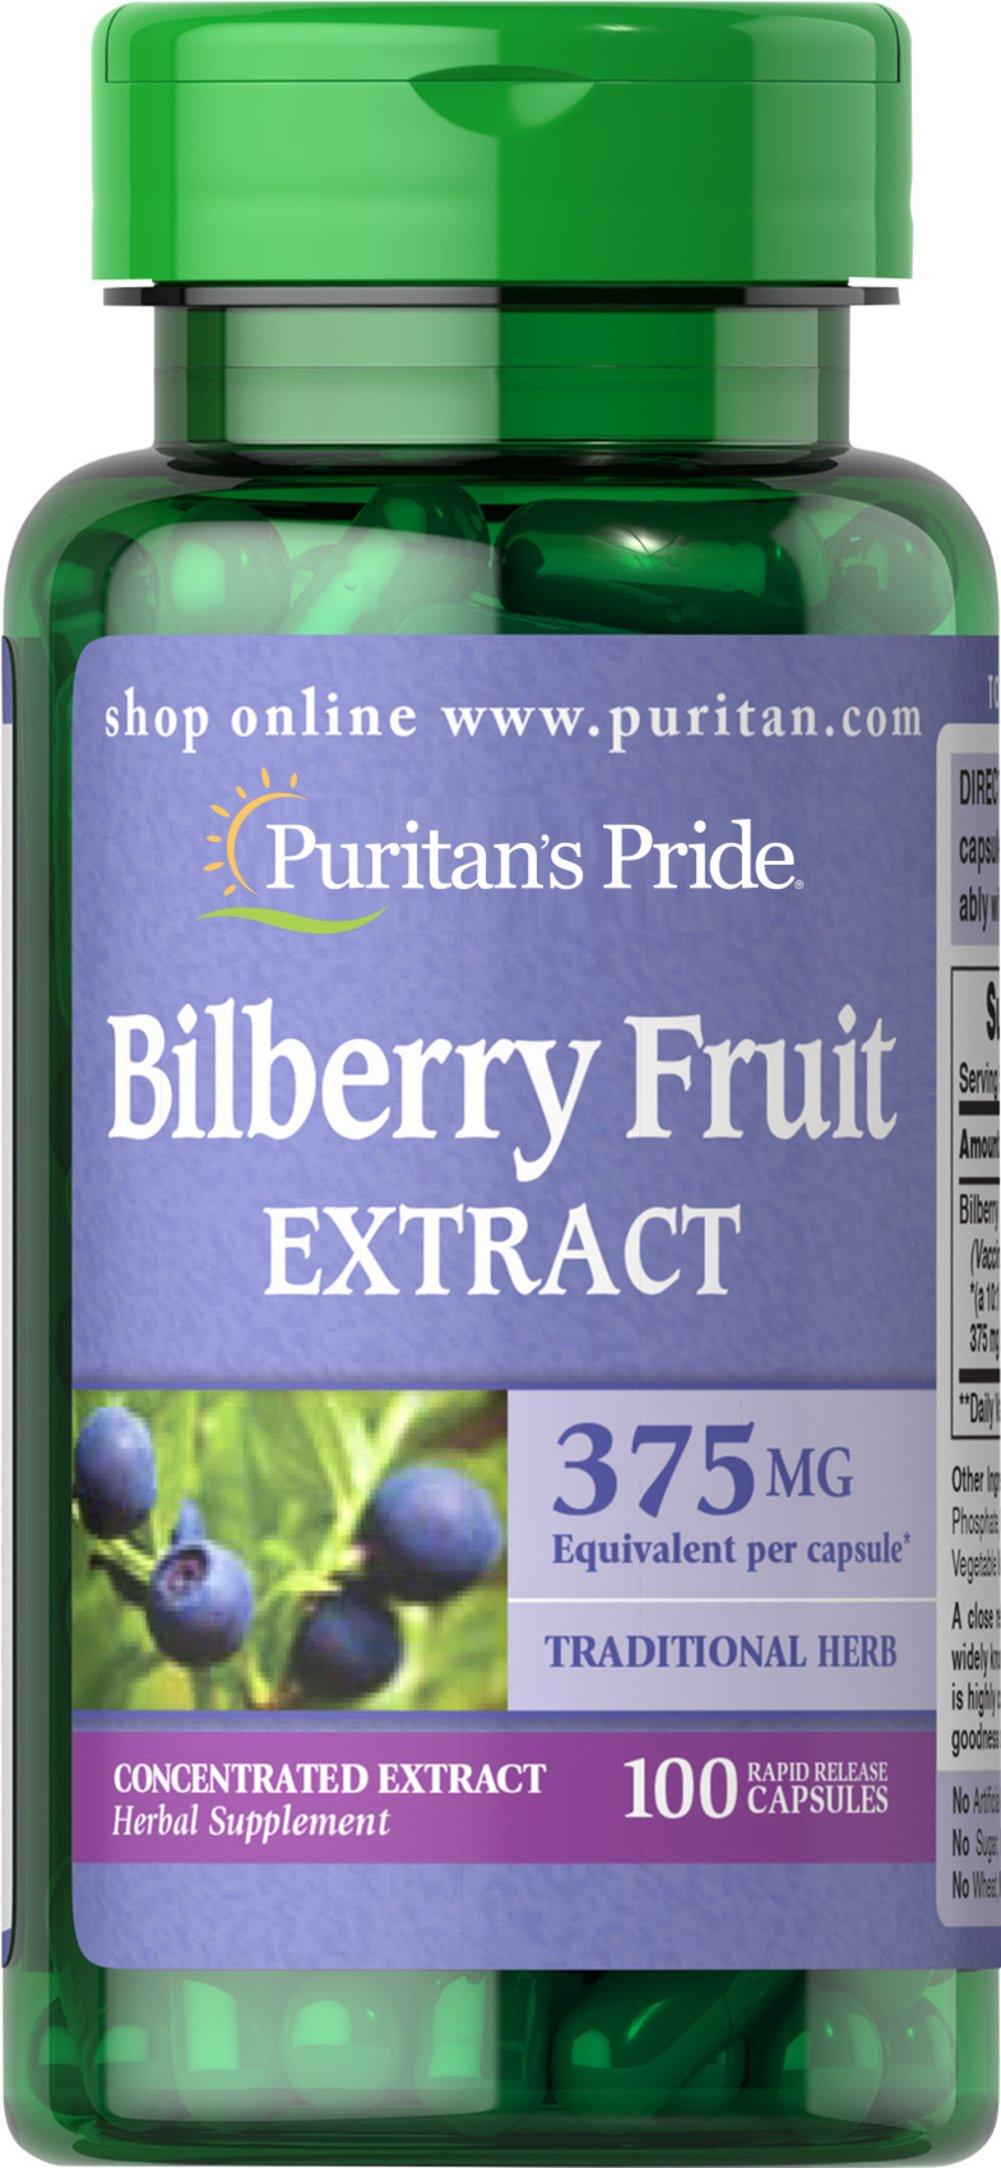 Bilberry 10:1 Extract 375 mg <p>Bilberry is a close relative of Blueberries. Our high-quality Bilberry contains over 15 different naturally-occurring anthocyanosides, which are flavonoids that contain beneficial antioxidant properties.** This formula contains 375 mg Bilberry (Vaccinium myrtillus) (fruit) (from 37.5 mg of 10:1 Extract).</p>  100 Capsules 375 mg $9.29